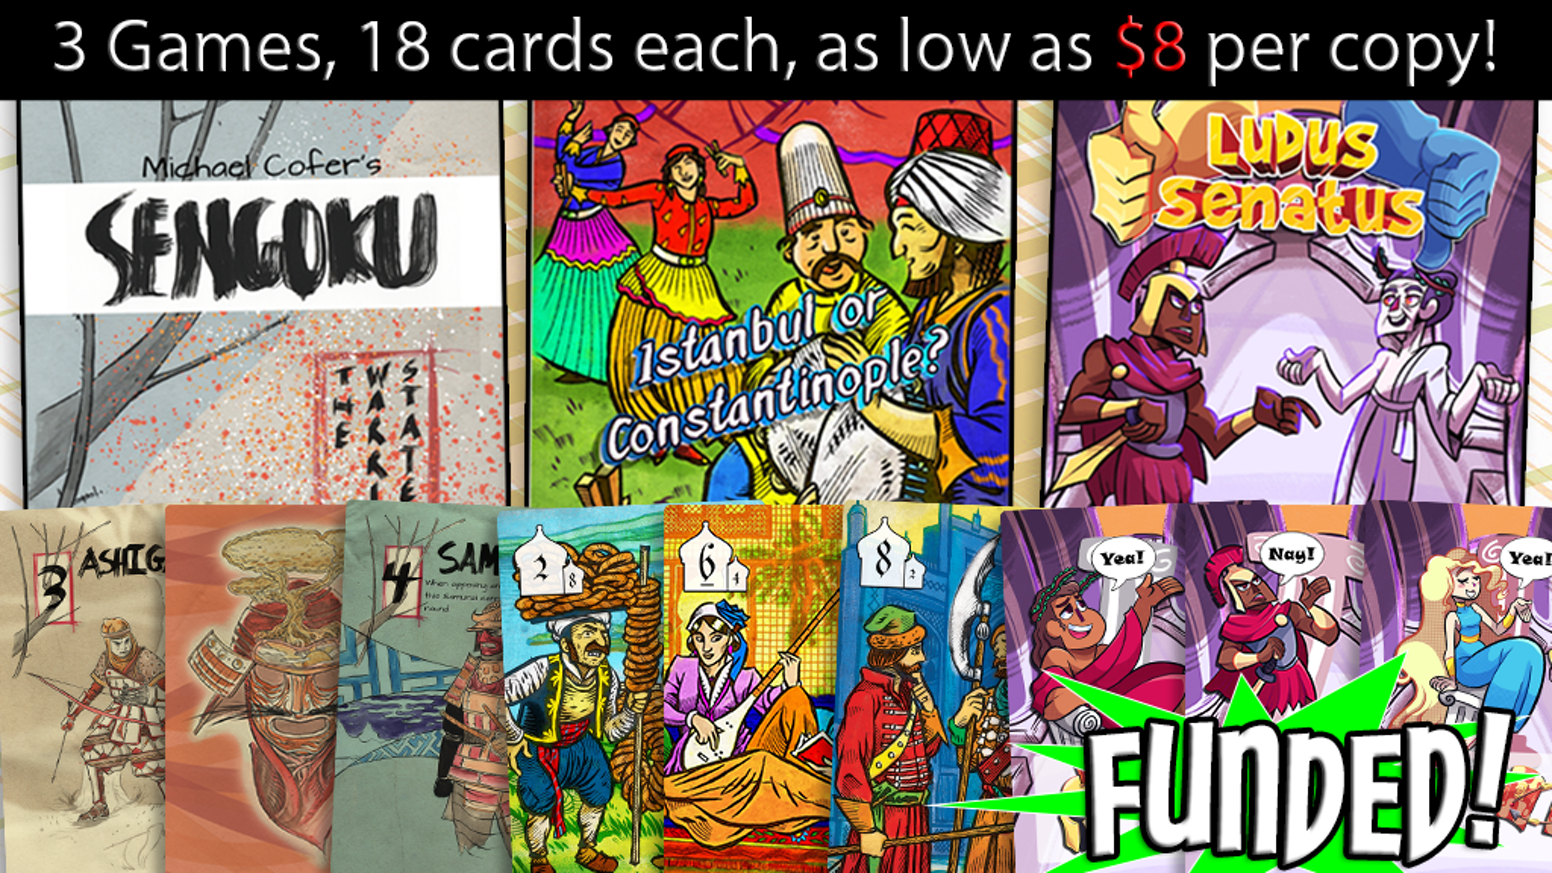 3 pocket sized games, just 18 cards each! Sengoku: The Warring States, Istanbul or Constantinople, and Ludus Senatus!